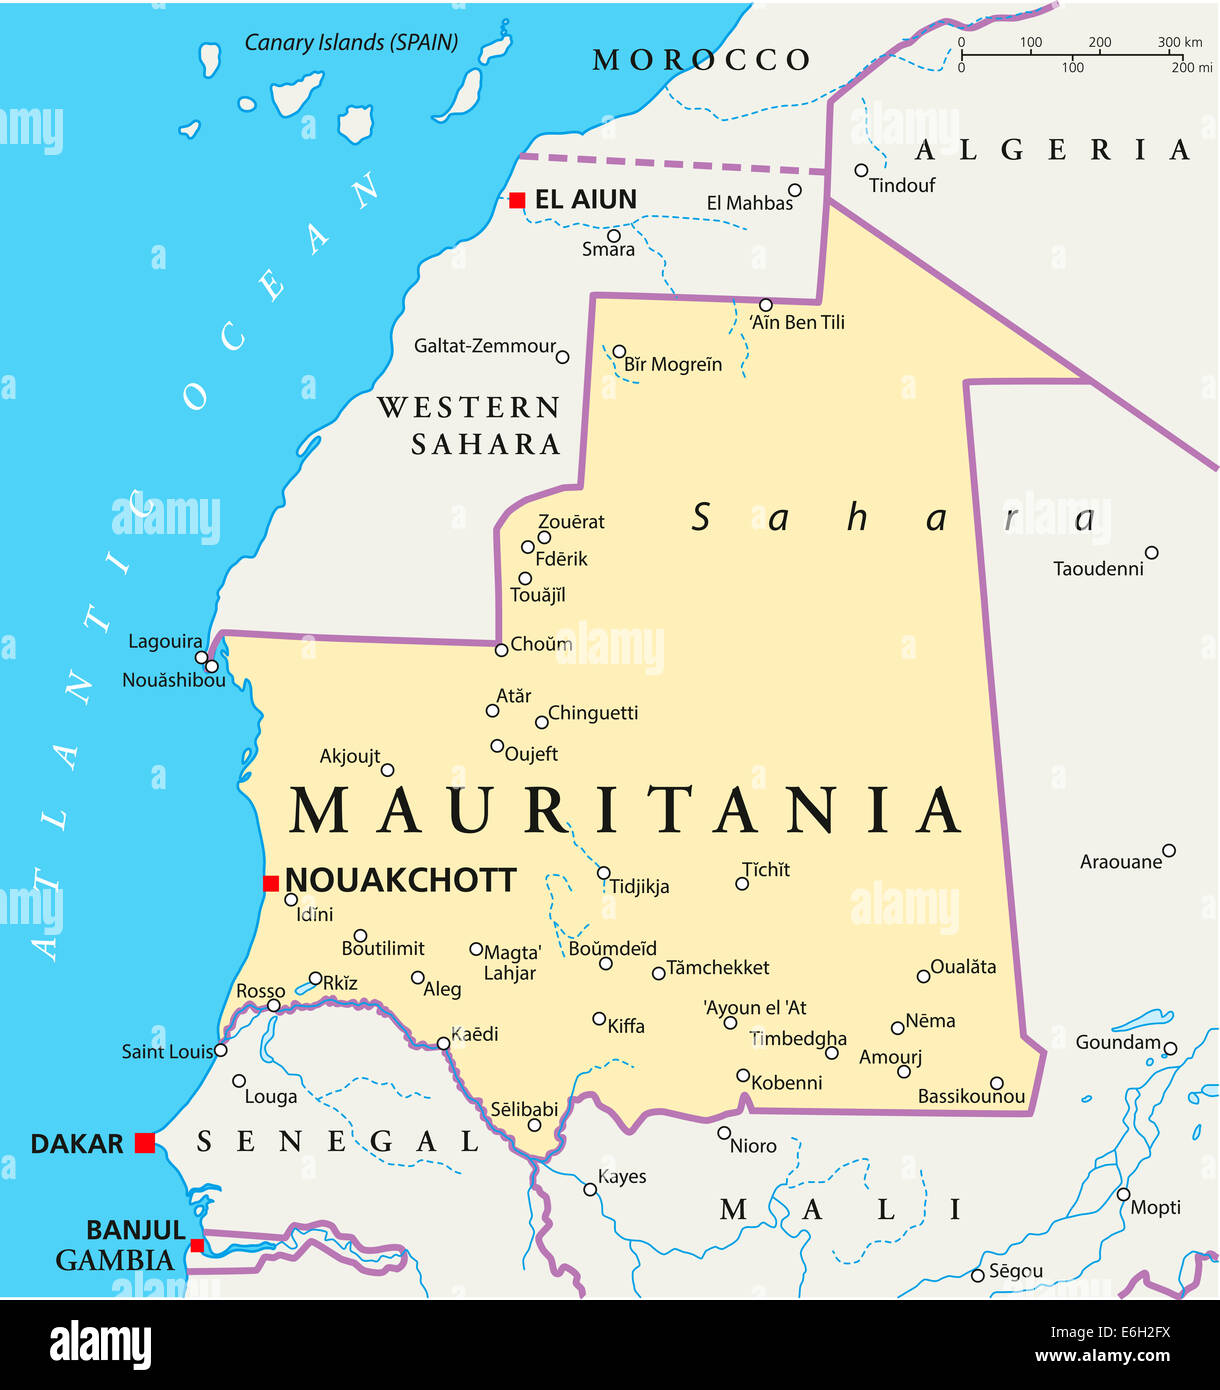 Mauritania Political Map With Capital Nouakchott, National Borders, Most  Important Cities, Rivers And